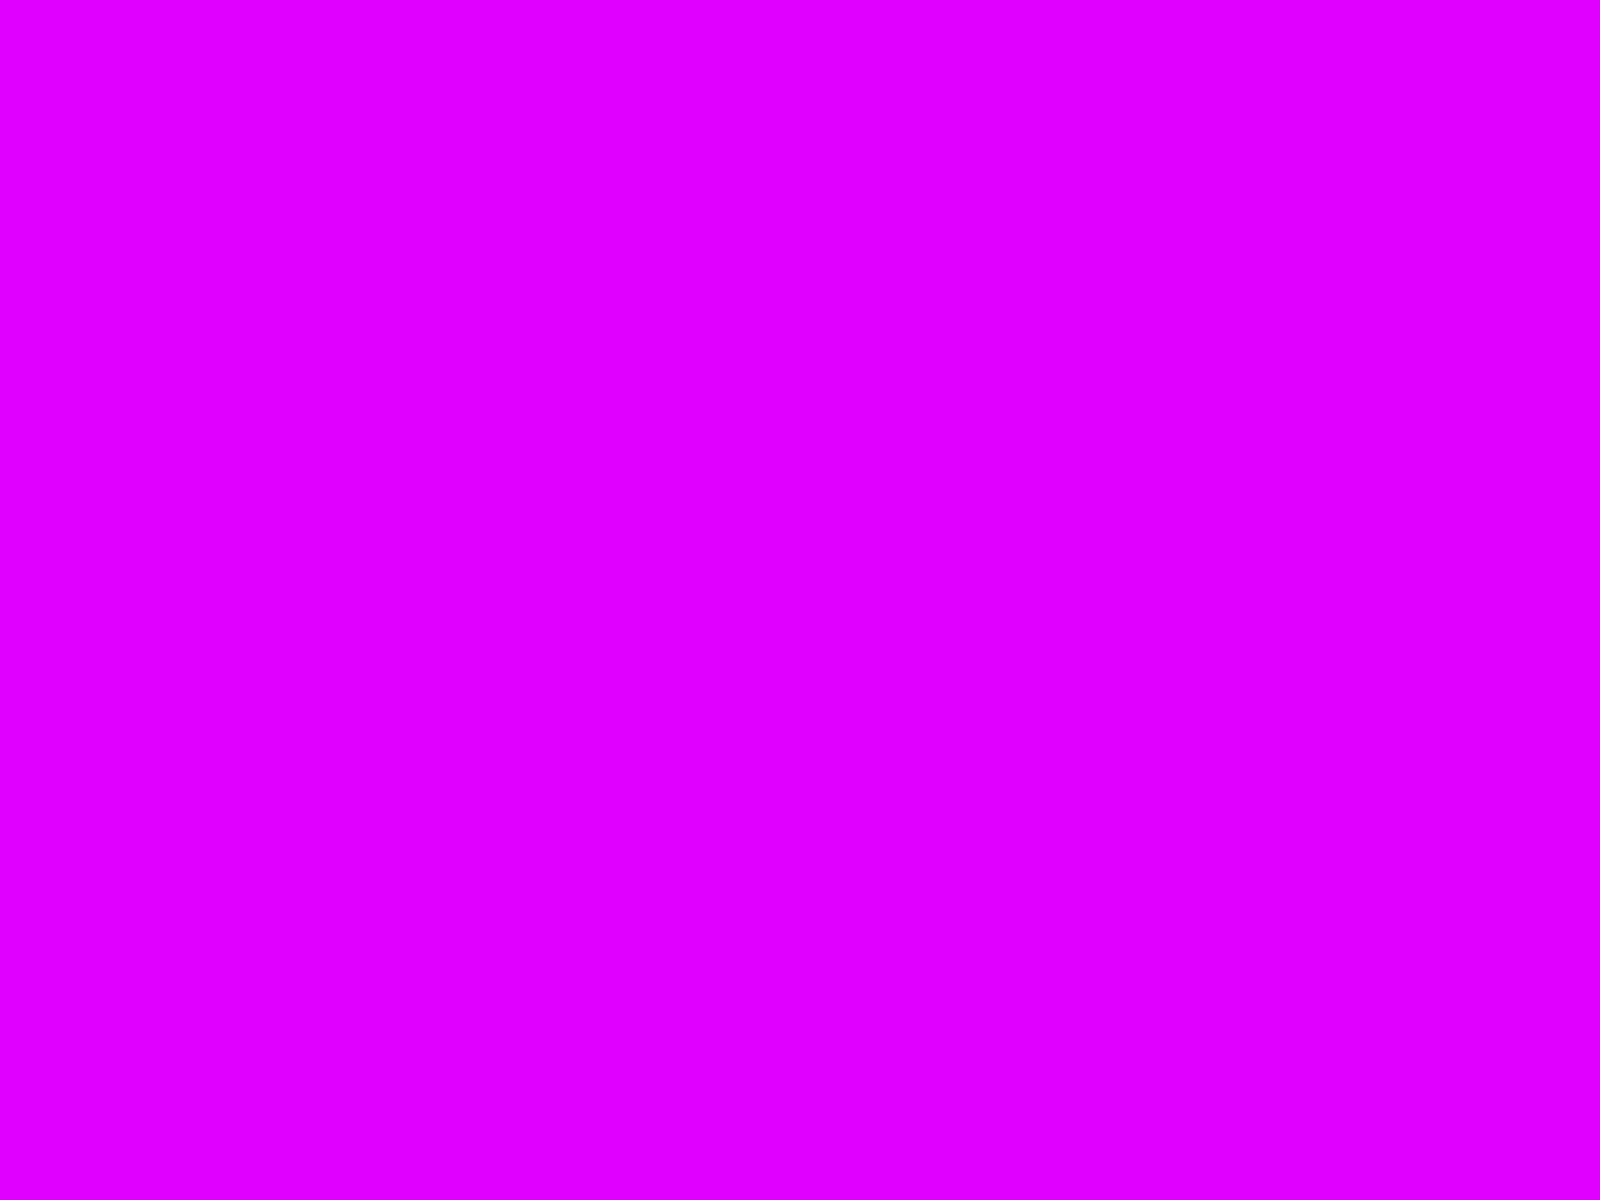 1600x1200 Phlox Solid Color Background